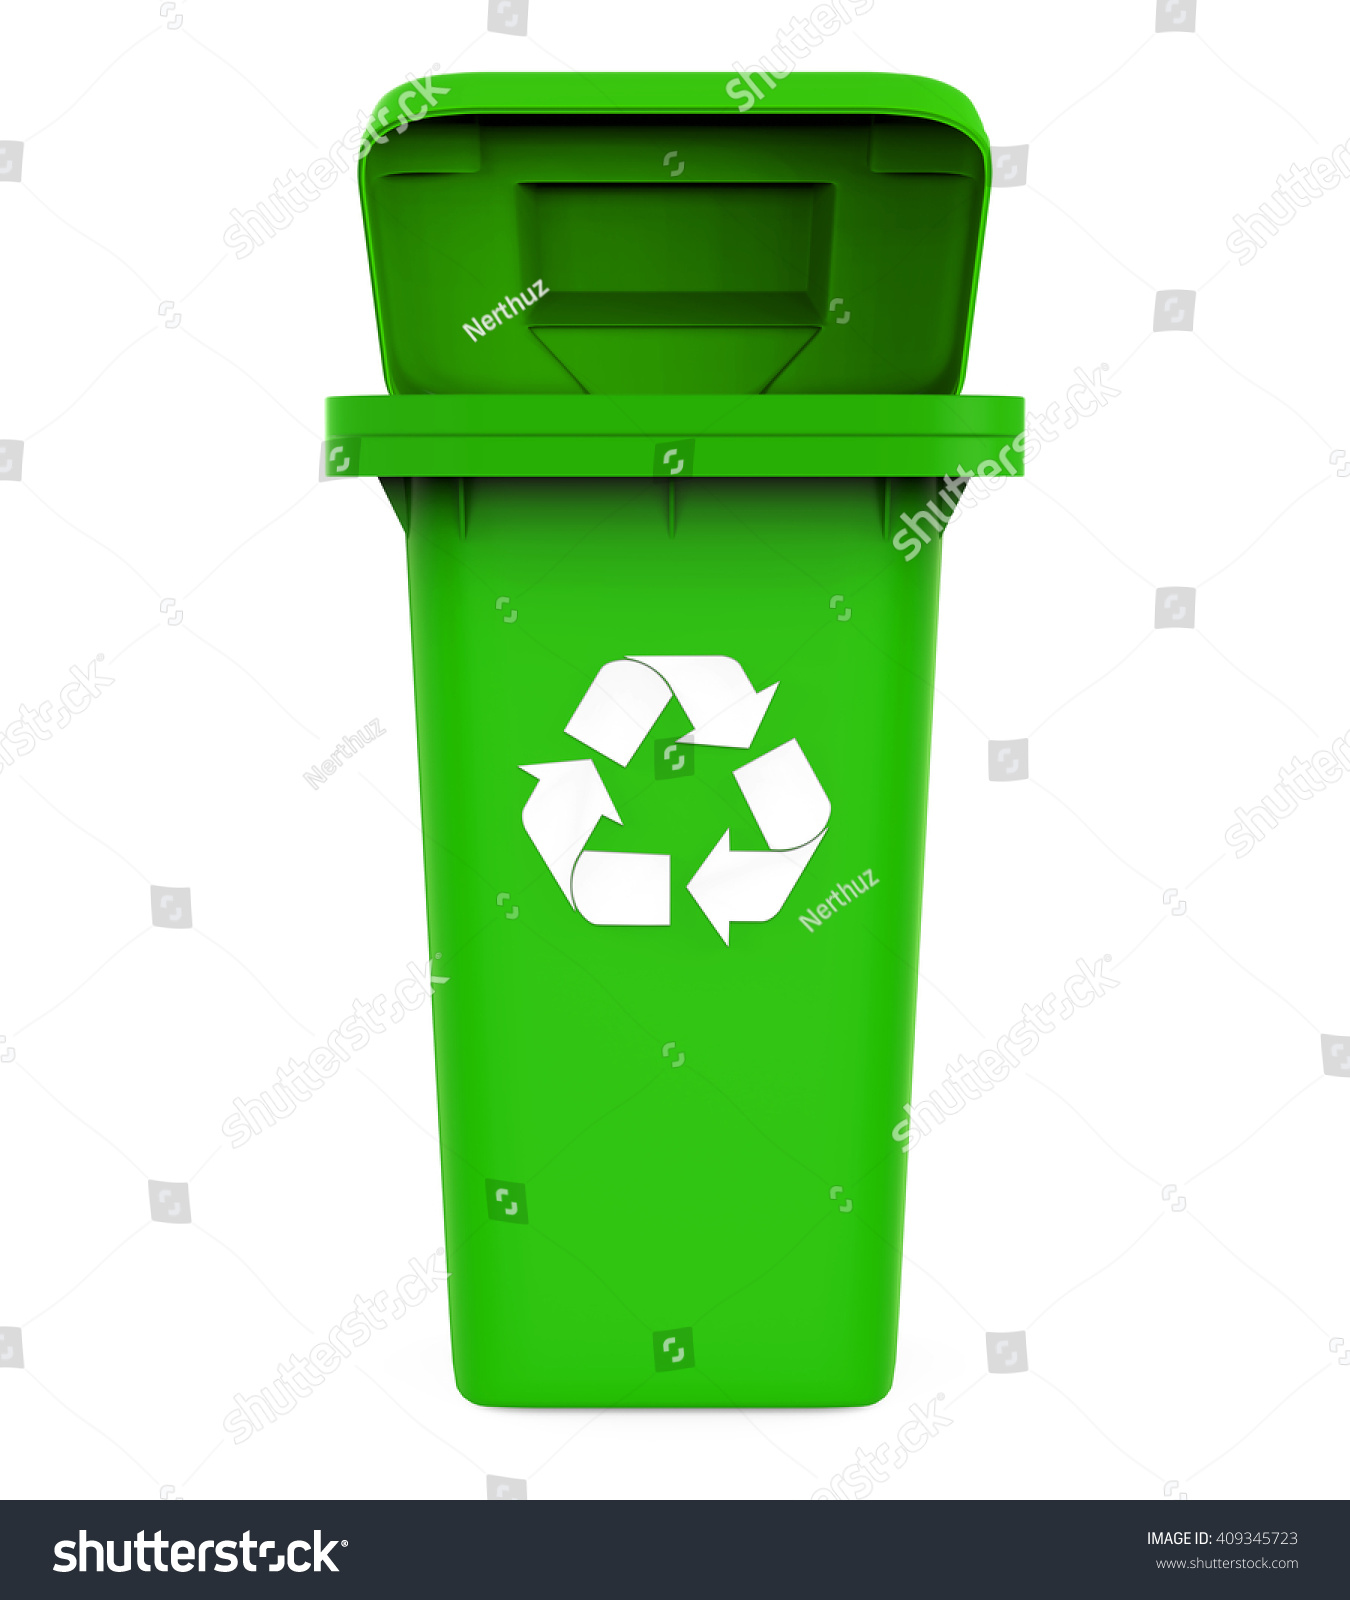 garbage trash bin with recycle symbol isolated on white background 3d render